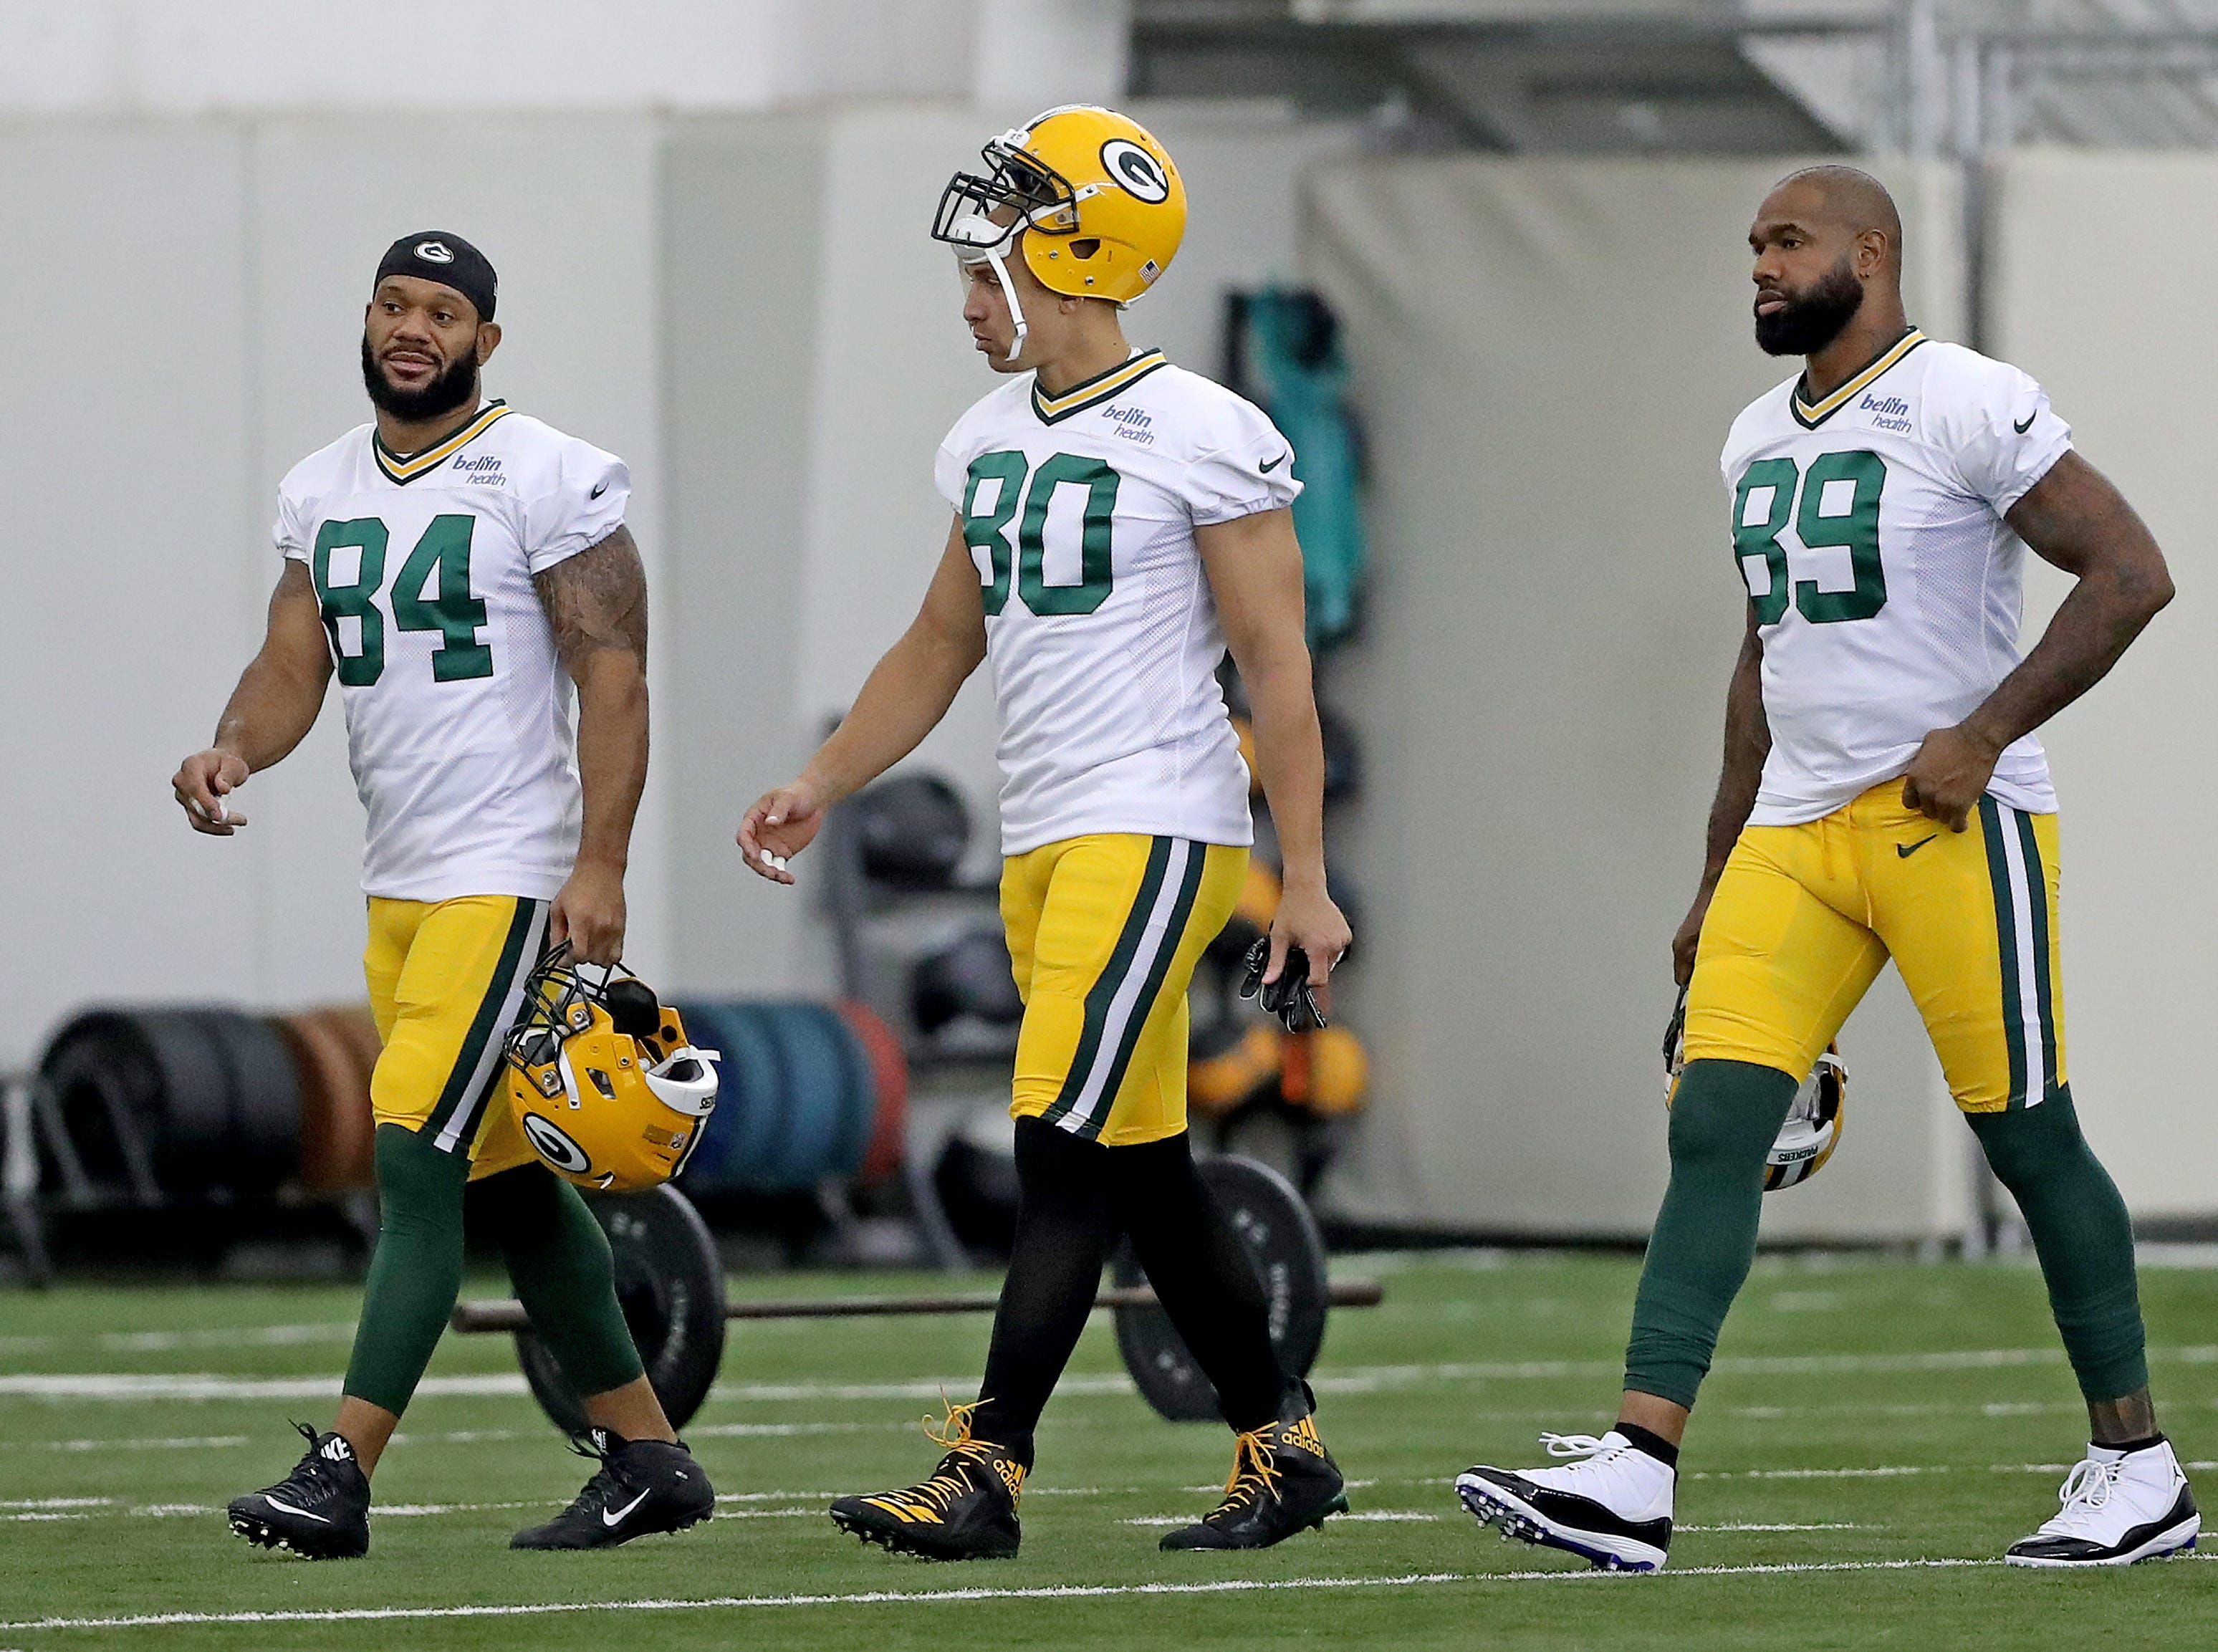 Green Bay Packers tight end Lance Kendricks (84), tight end Jimmy Graham (80) and tight end Marcedes Lewis (89) during Packers practice in the Don Hutson Center Monday, September 3, 2018 in Ashwaubenon, Wis